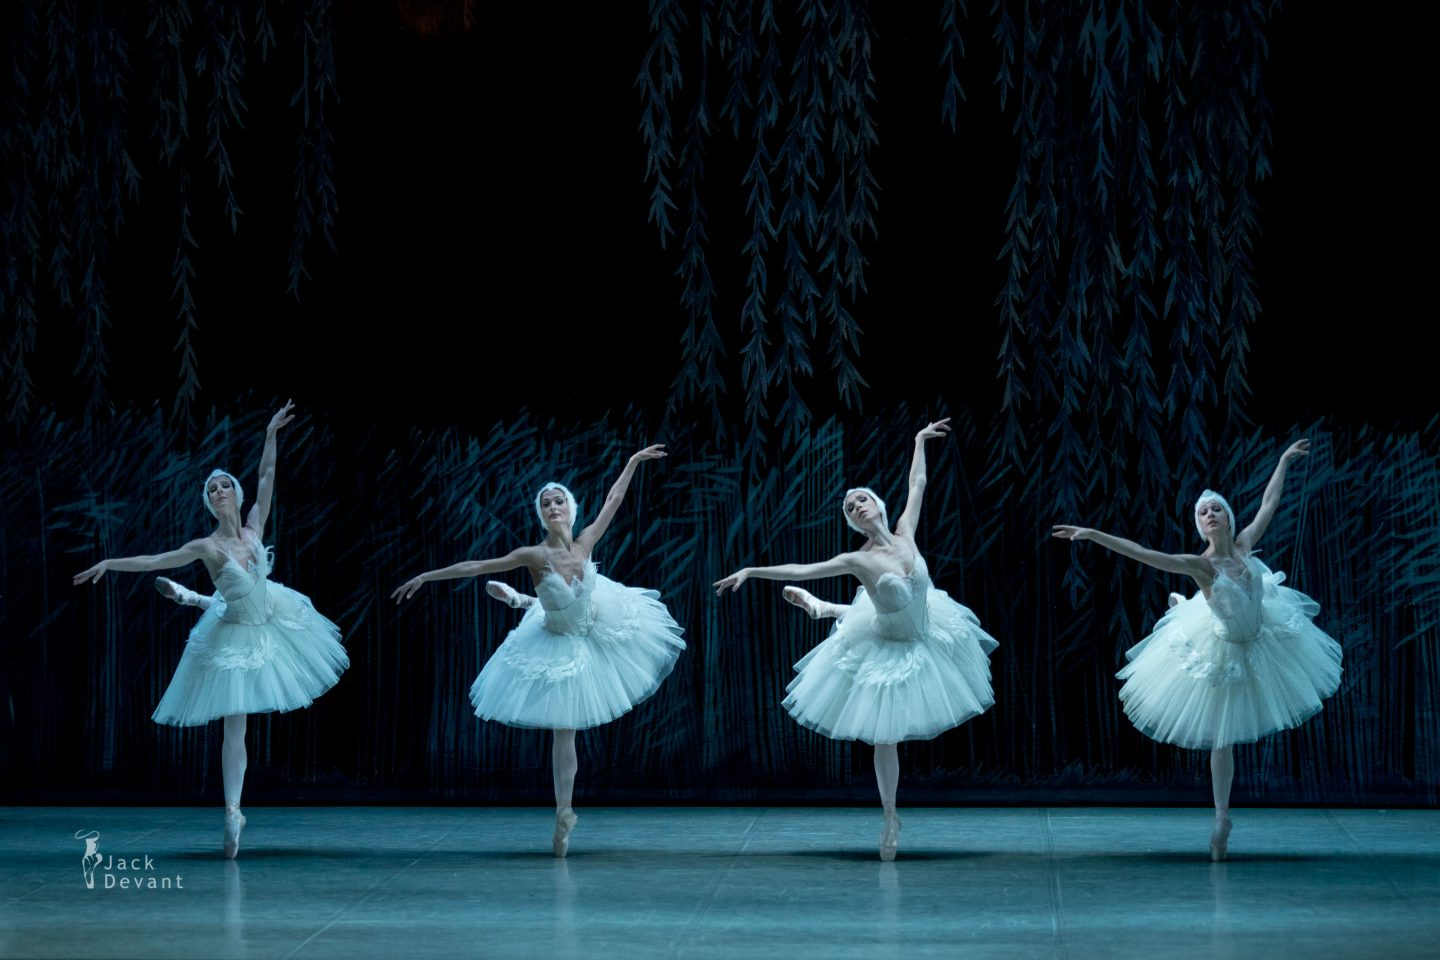 Ekaterina Gusina, Natalya Makina, Anna Poistogova and Elena Hvatova as four Swans in Swan Lake